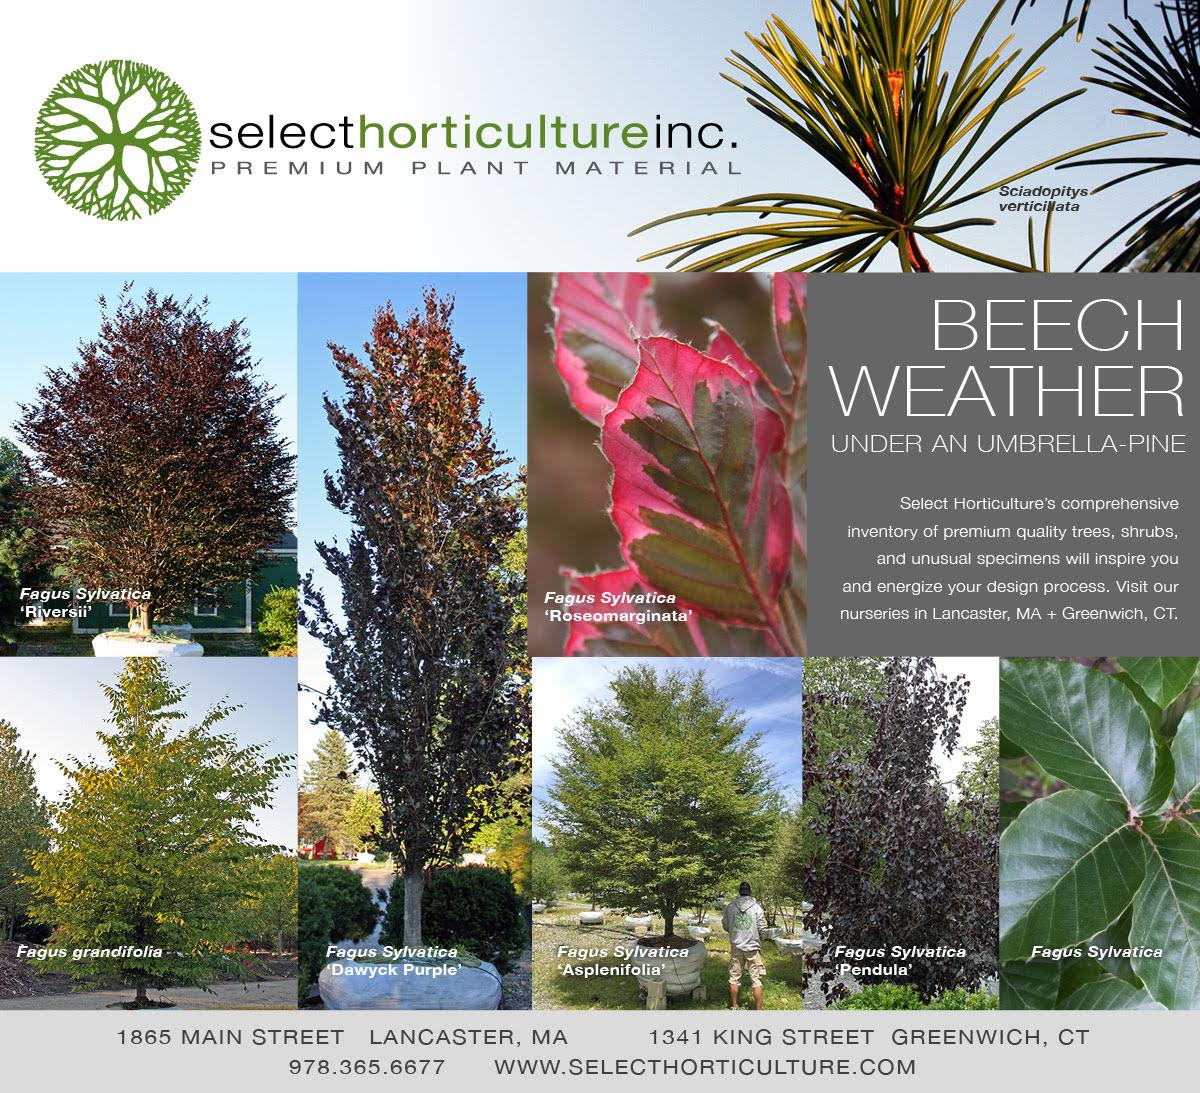 It's Beech Weather at Select Horticulture